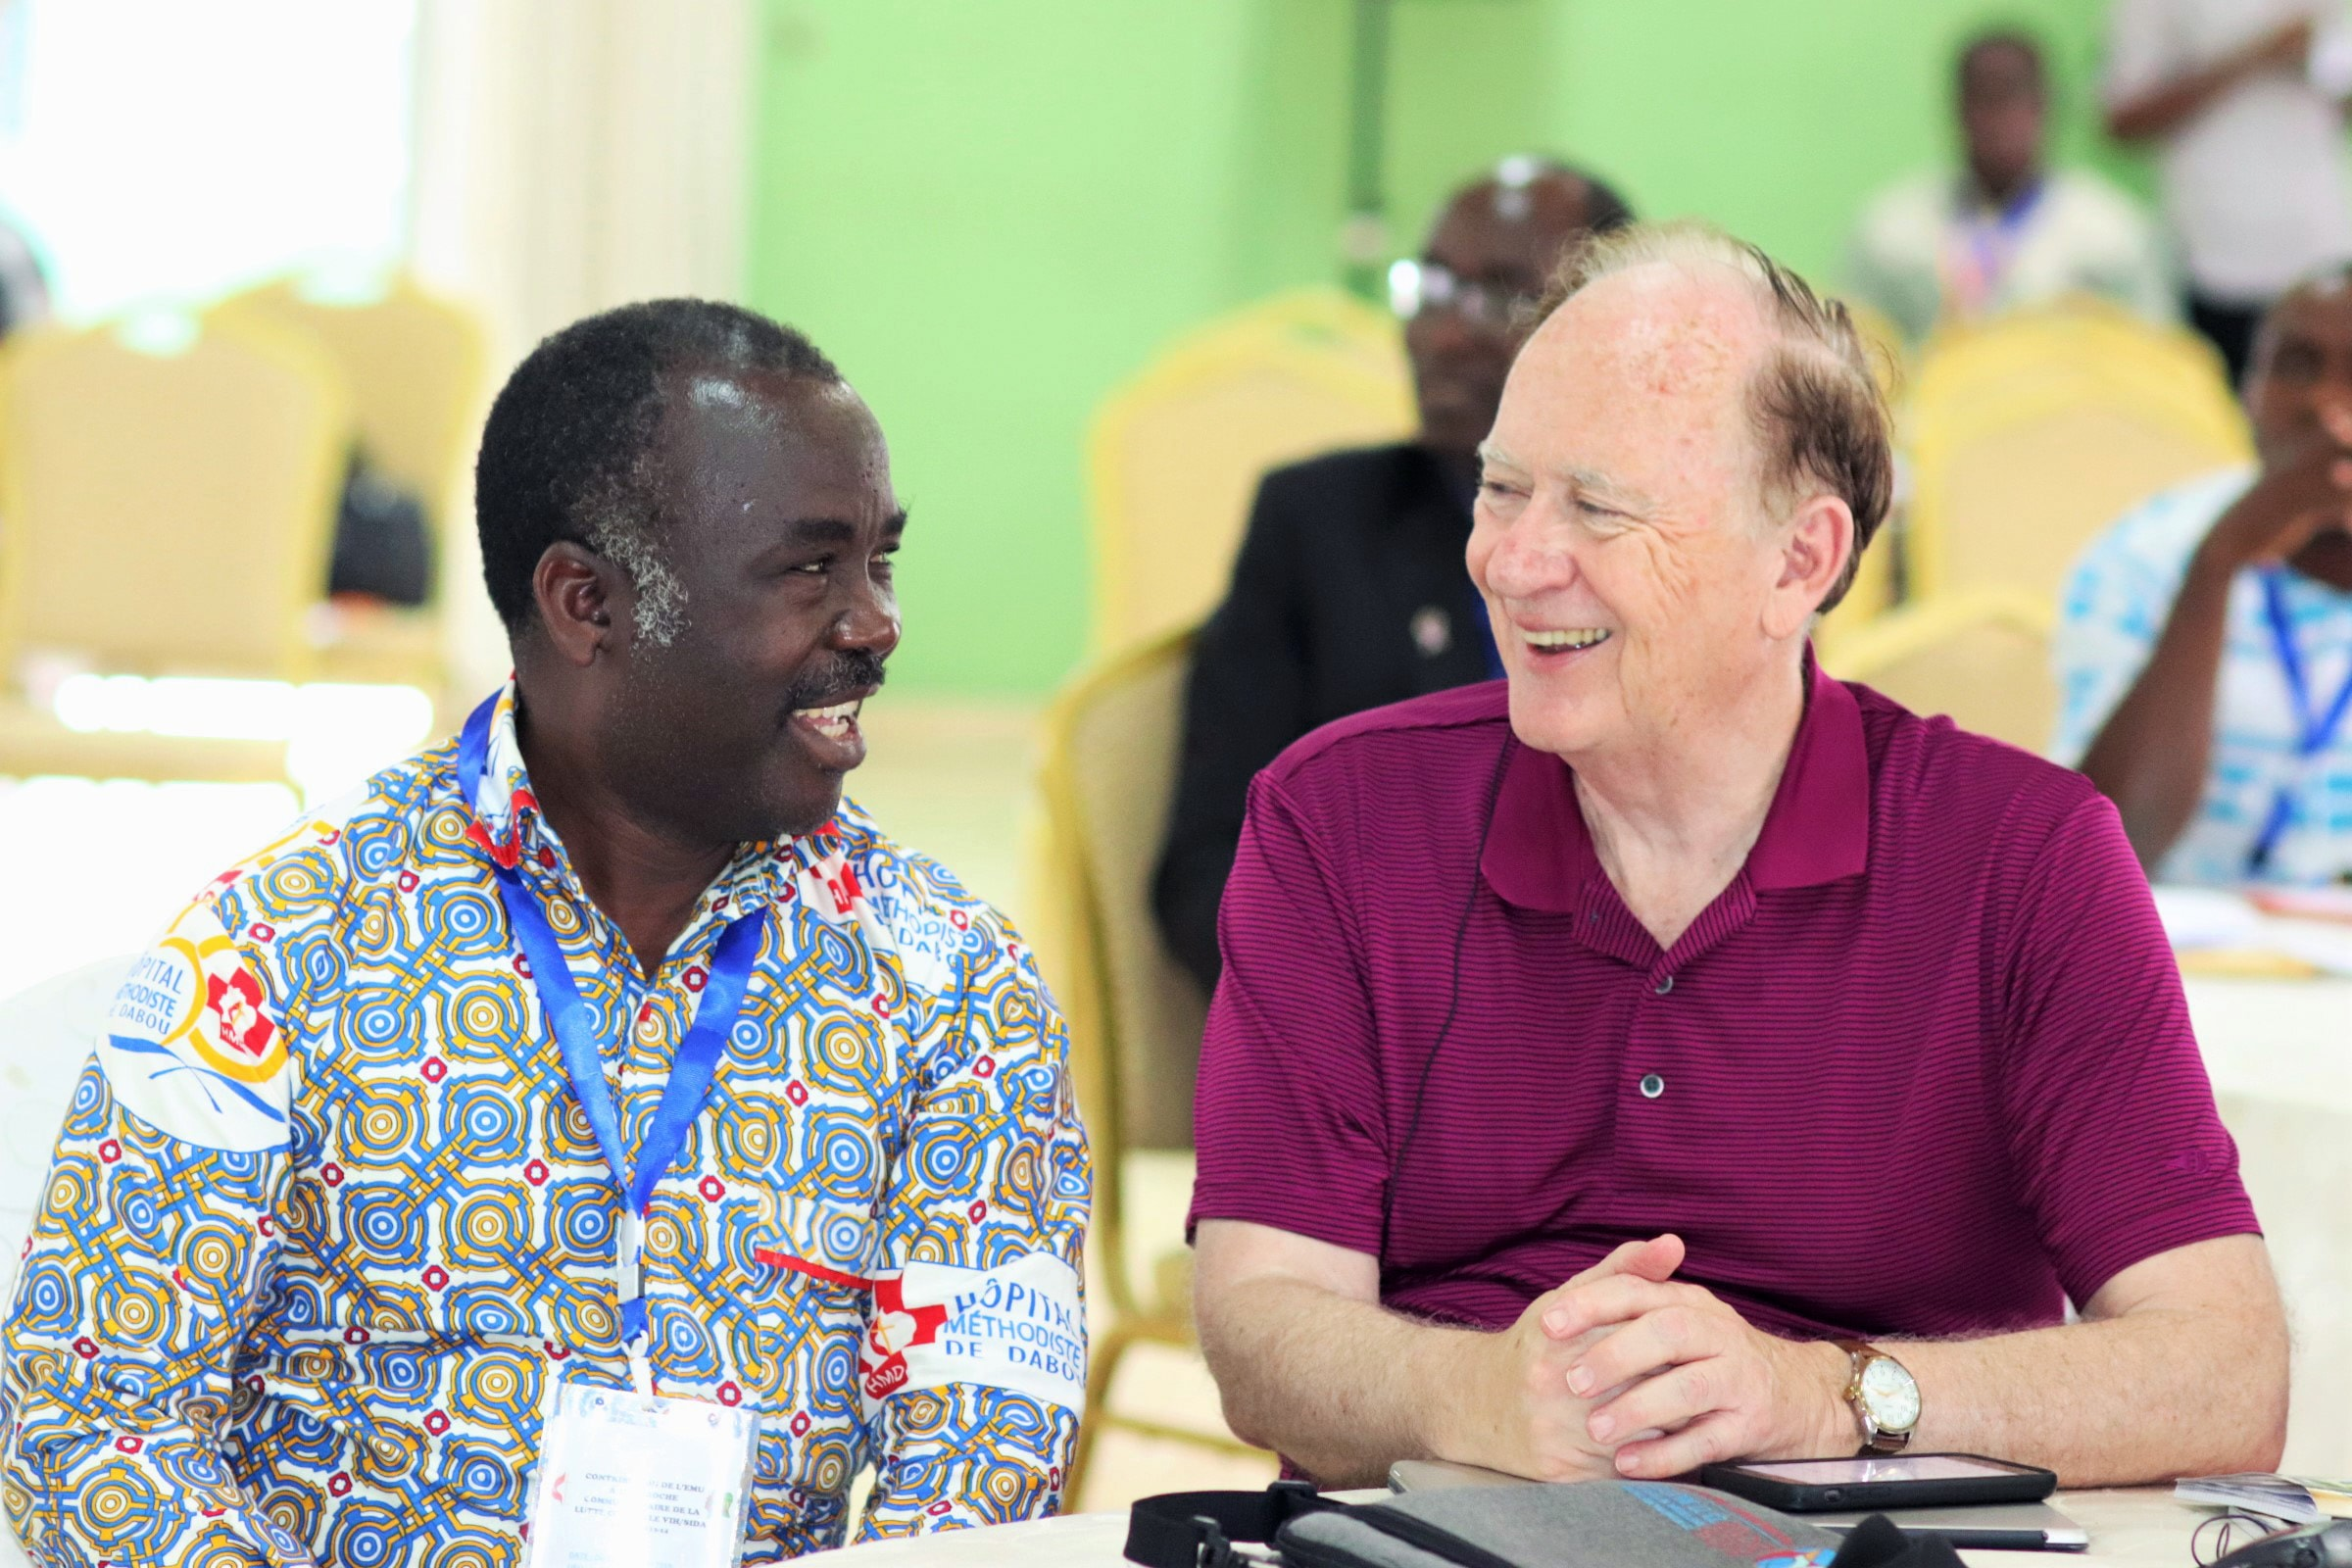 Dr. Daniel Ahui (left), director of the United Methodist Hospital in Dabou, and the Rev. Donald Messer, executive director of the United Methodist-related Center for Health and Hope, at the summit. The Dabou hospital is providing care to 1,362 HIV patients. Photo by Isaac Broune, UMNS.